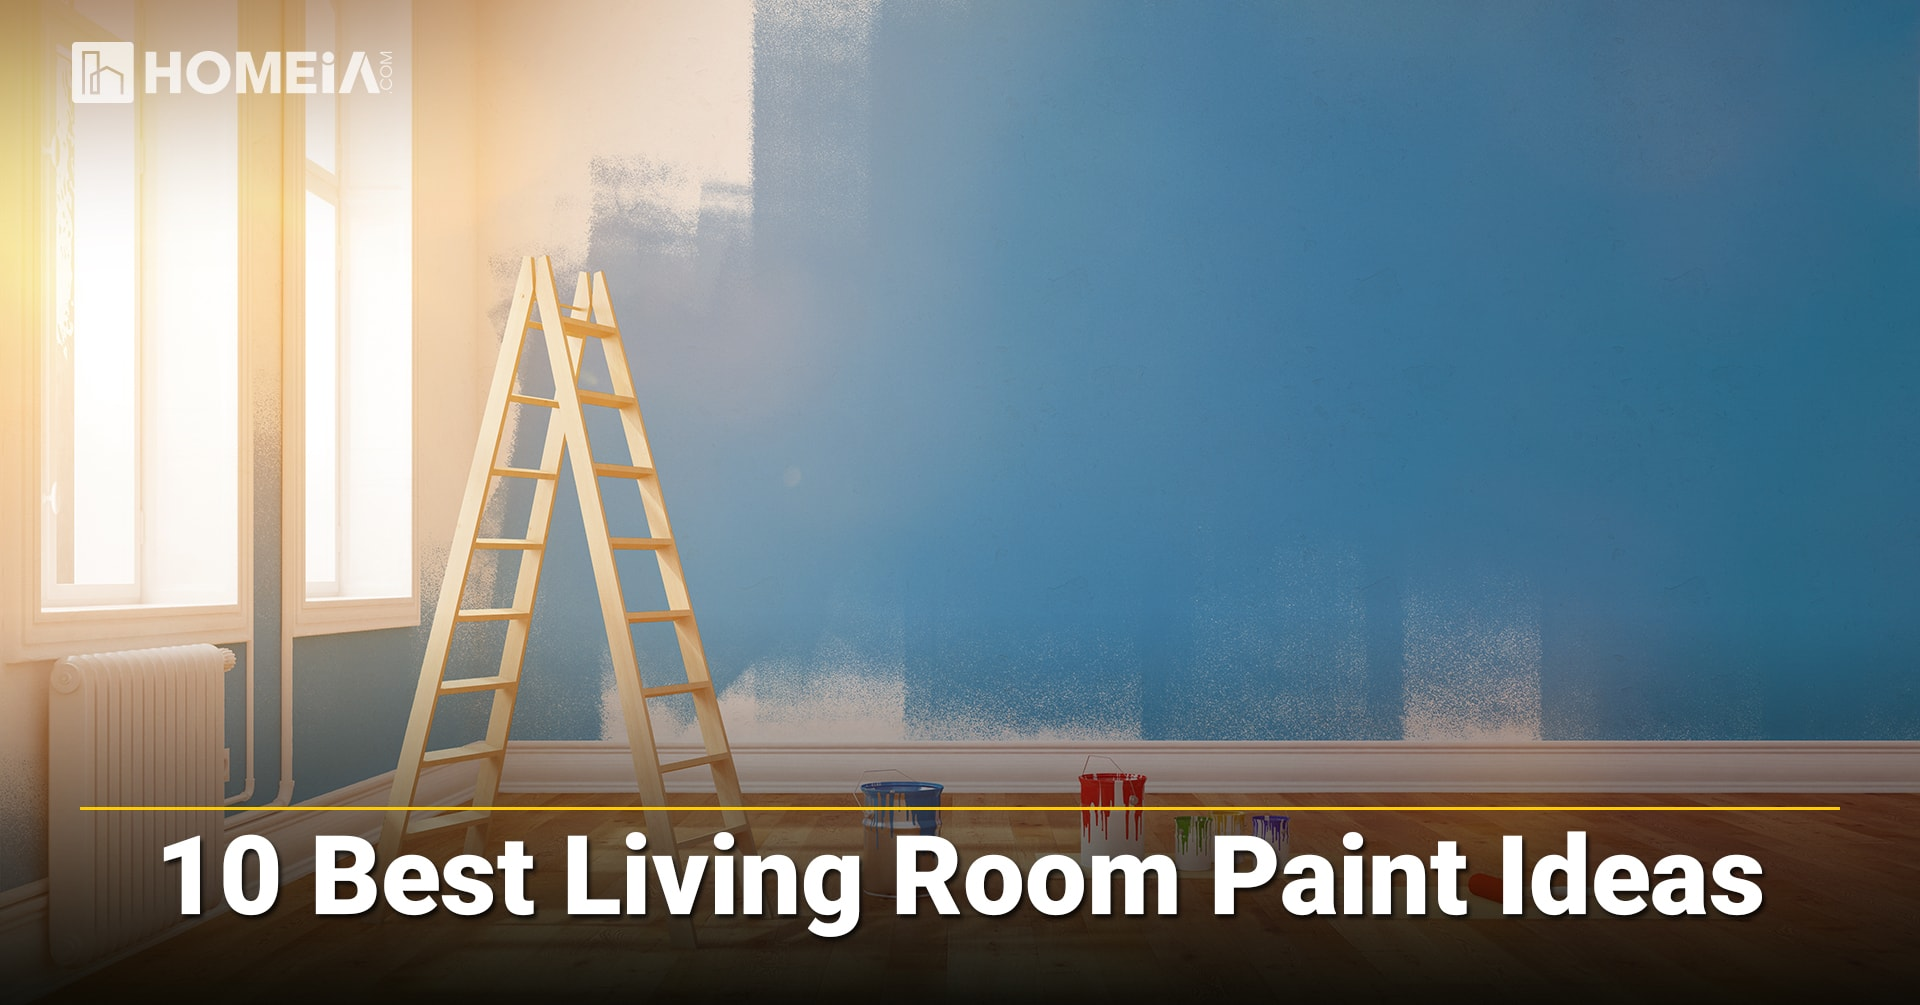 10 Best Living Room Paint Ideas in 2021